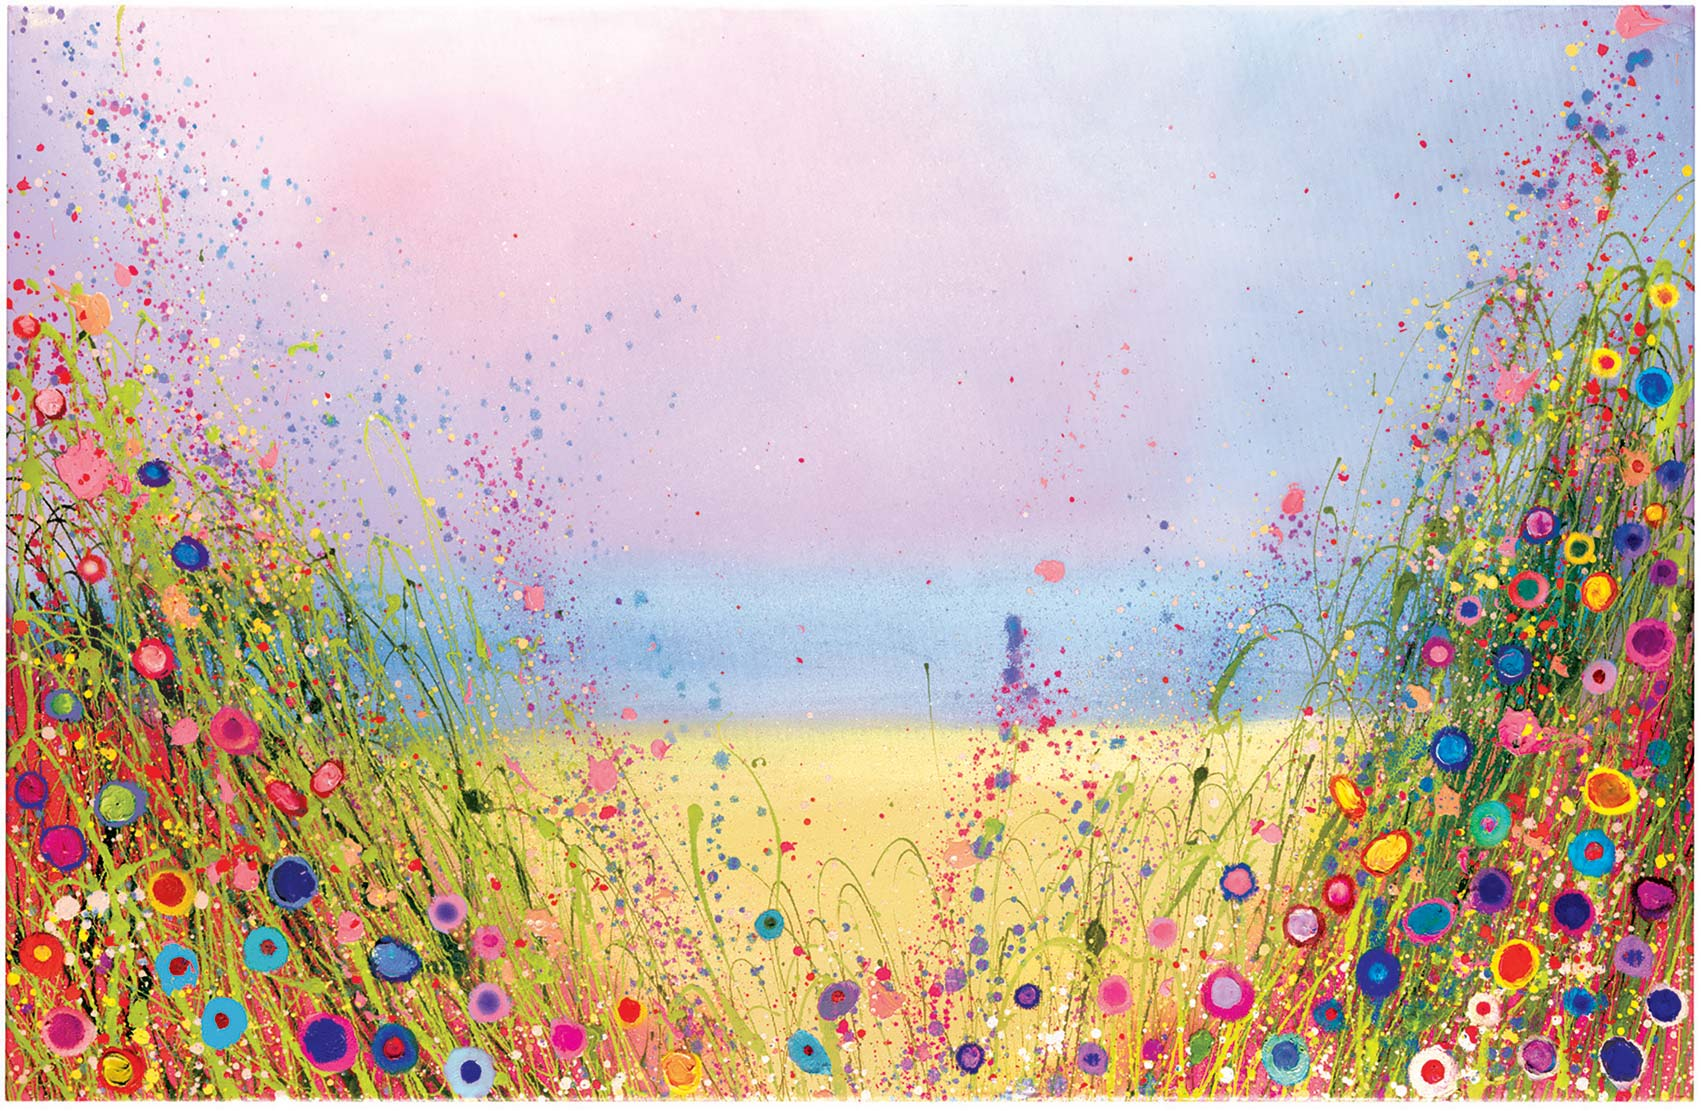 *NEW* Autumnal Limited Edition Prints from Yvonne Coomber